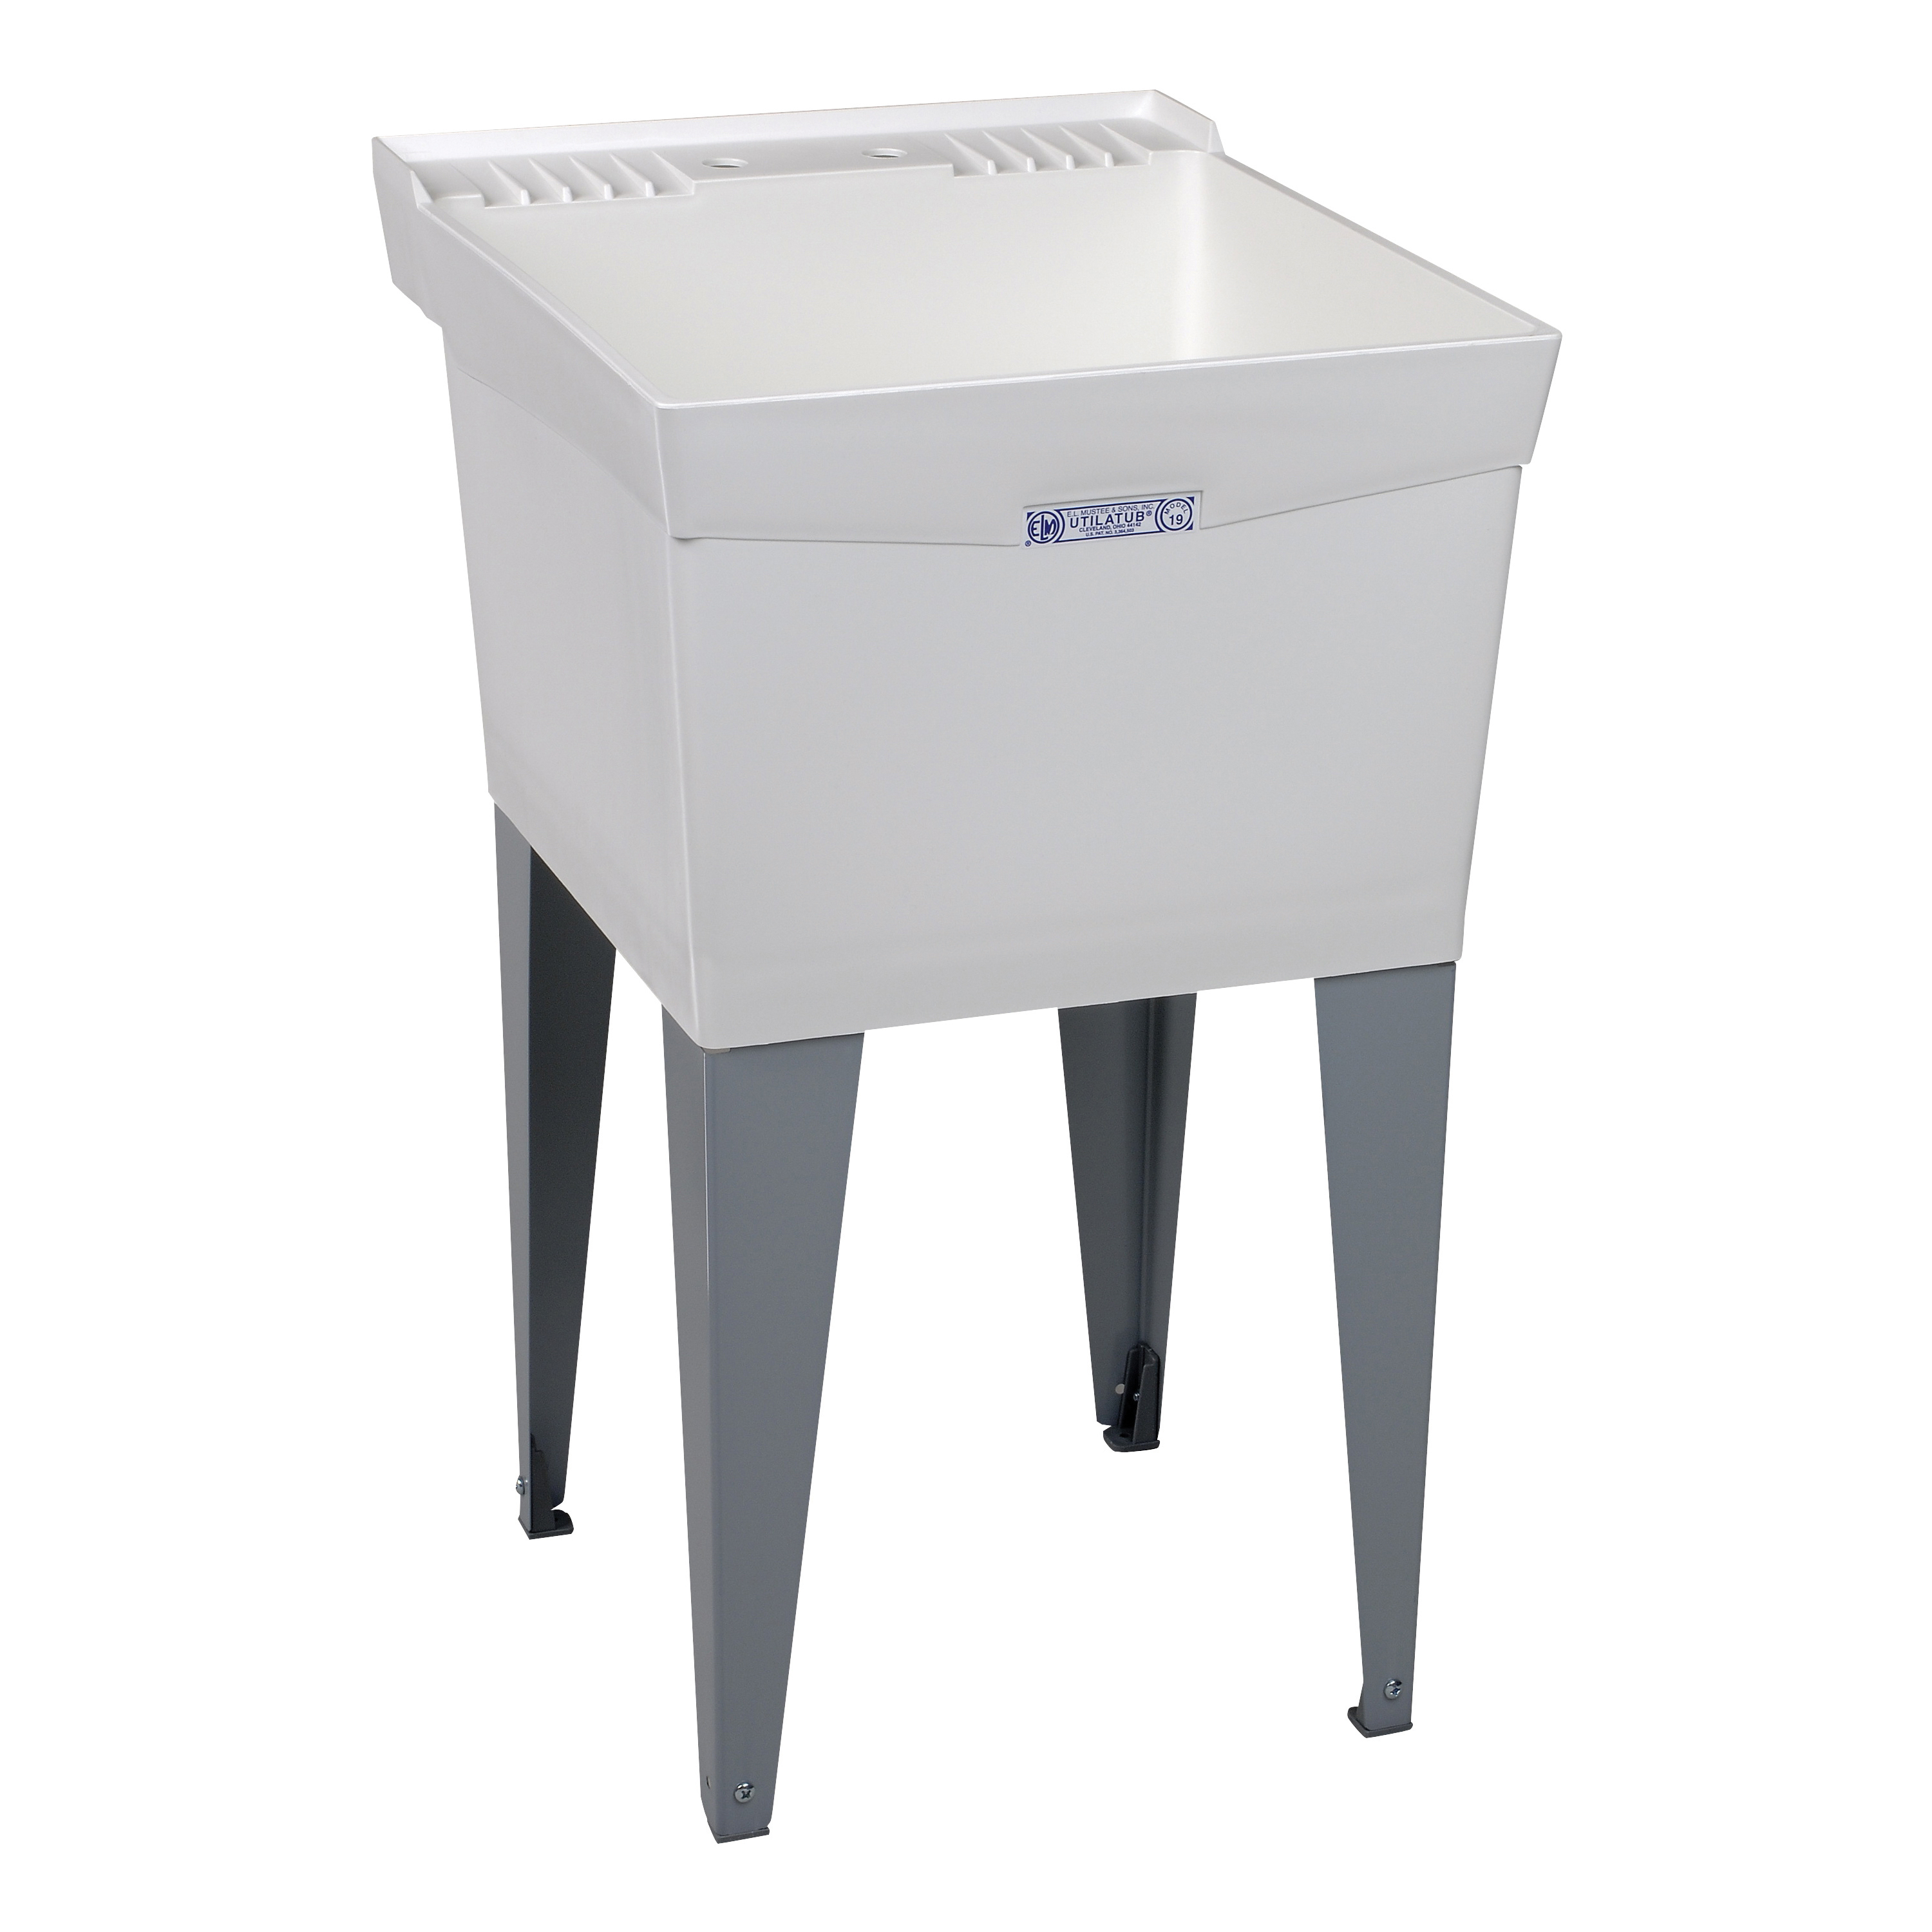 Picture of ELM UTILATUB 19F Laundry Tub, 18 gal Capacity, 2-Deck Hole, 24 in OAW, 24 in OAD, 20 in OAH, Thermoplastic